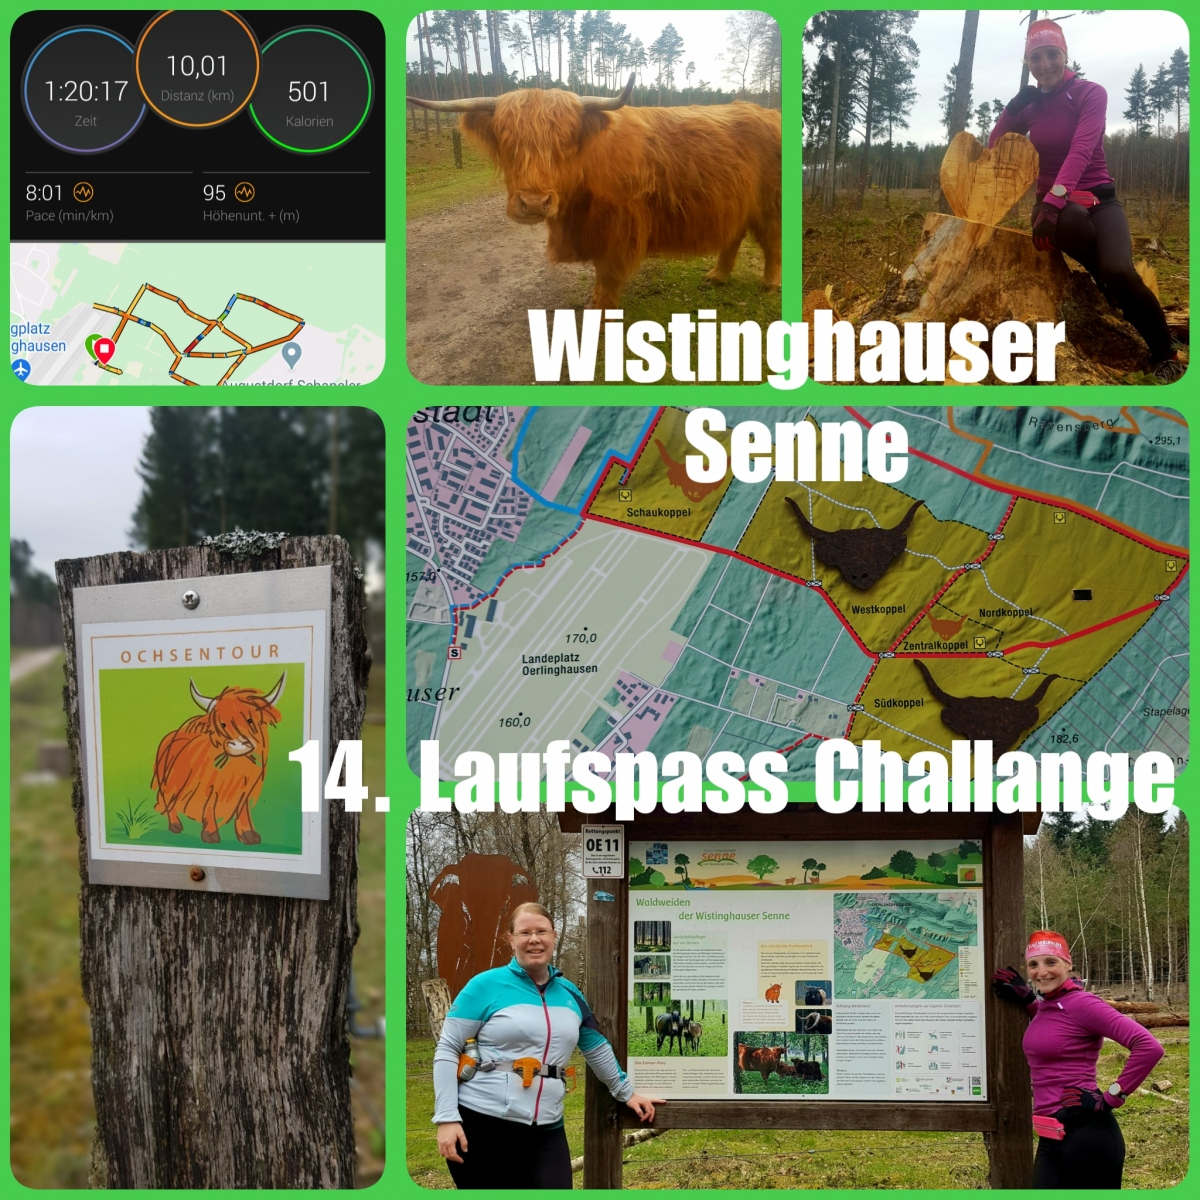 Zipter-Kristina-14-Challenge-Wistinghauser-Senne-Ow1Bw